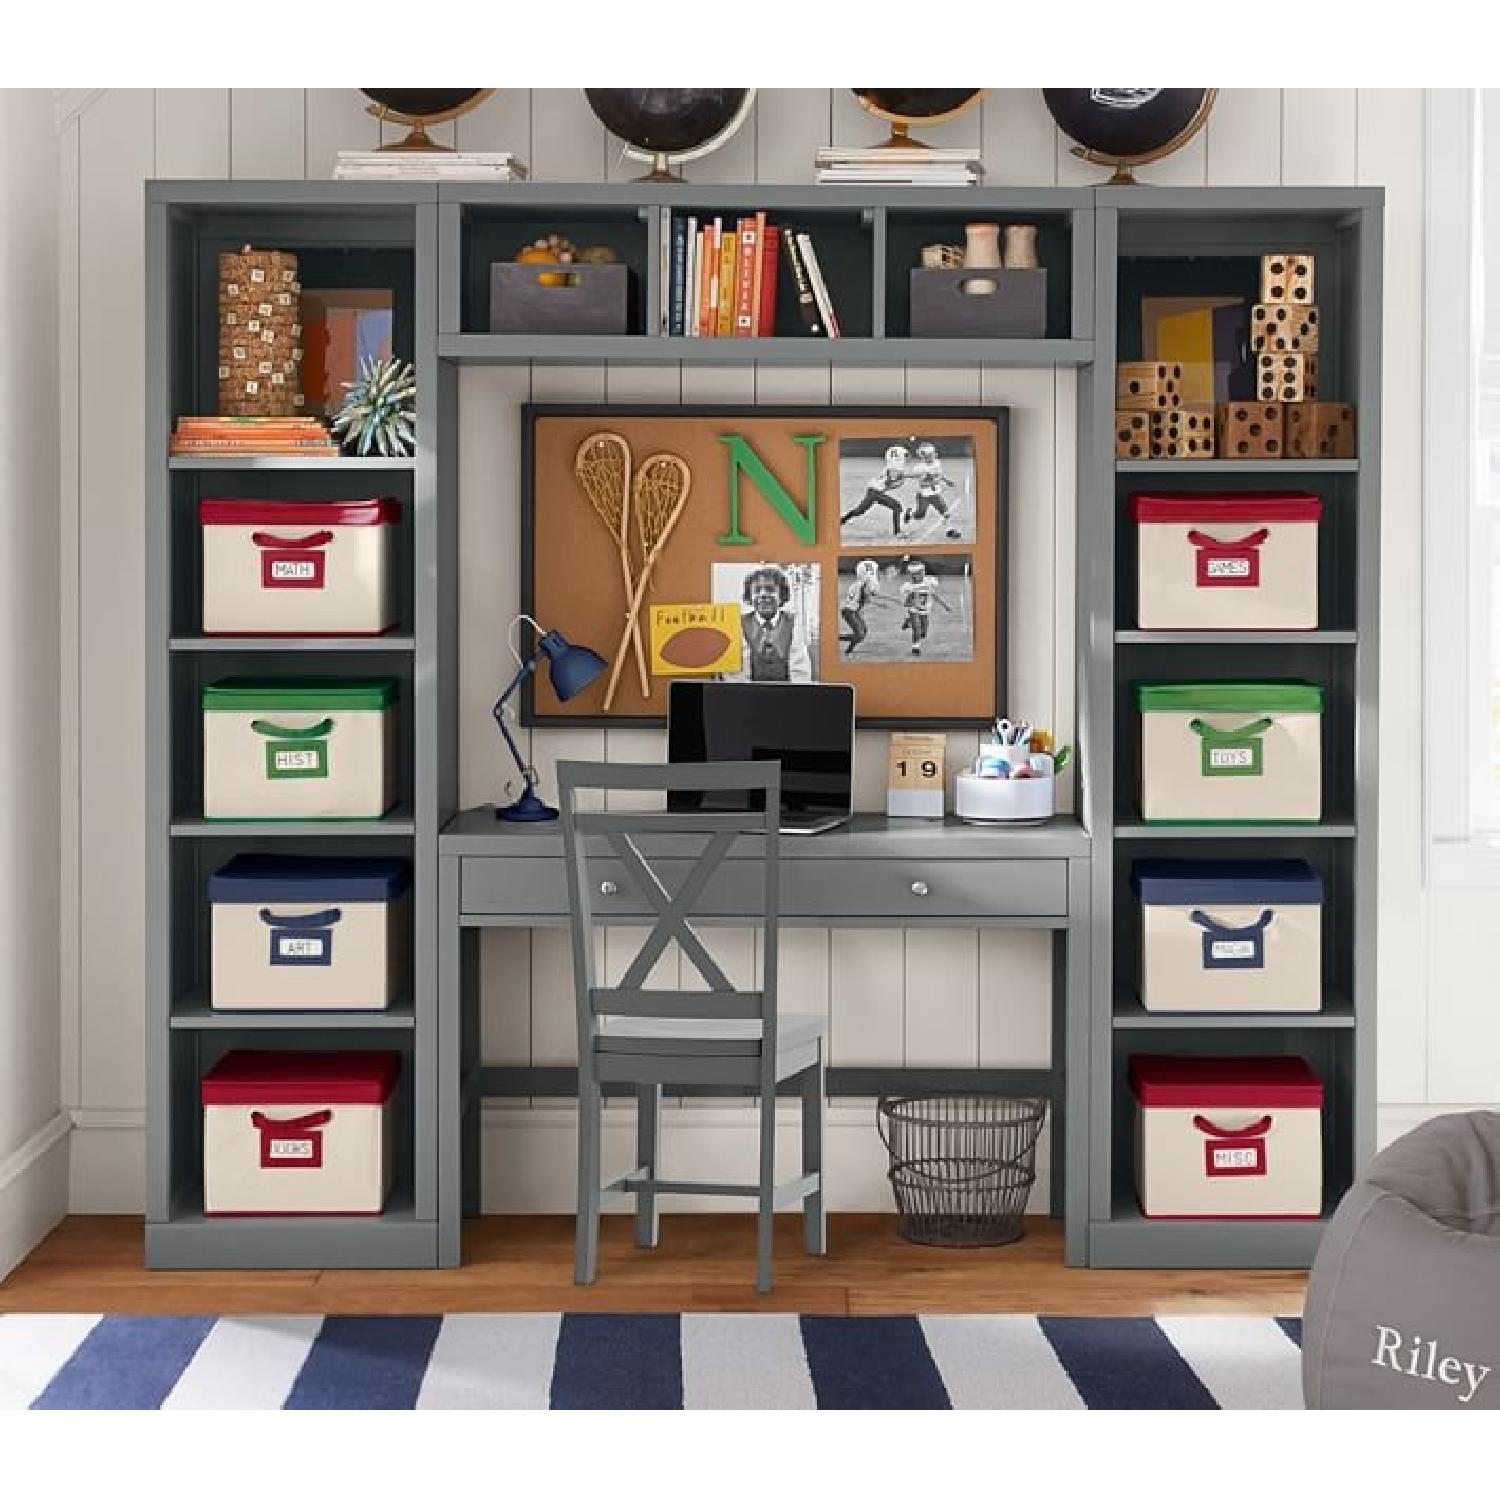 Pottery Barn Kids Rugby Area Rug-0